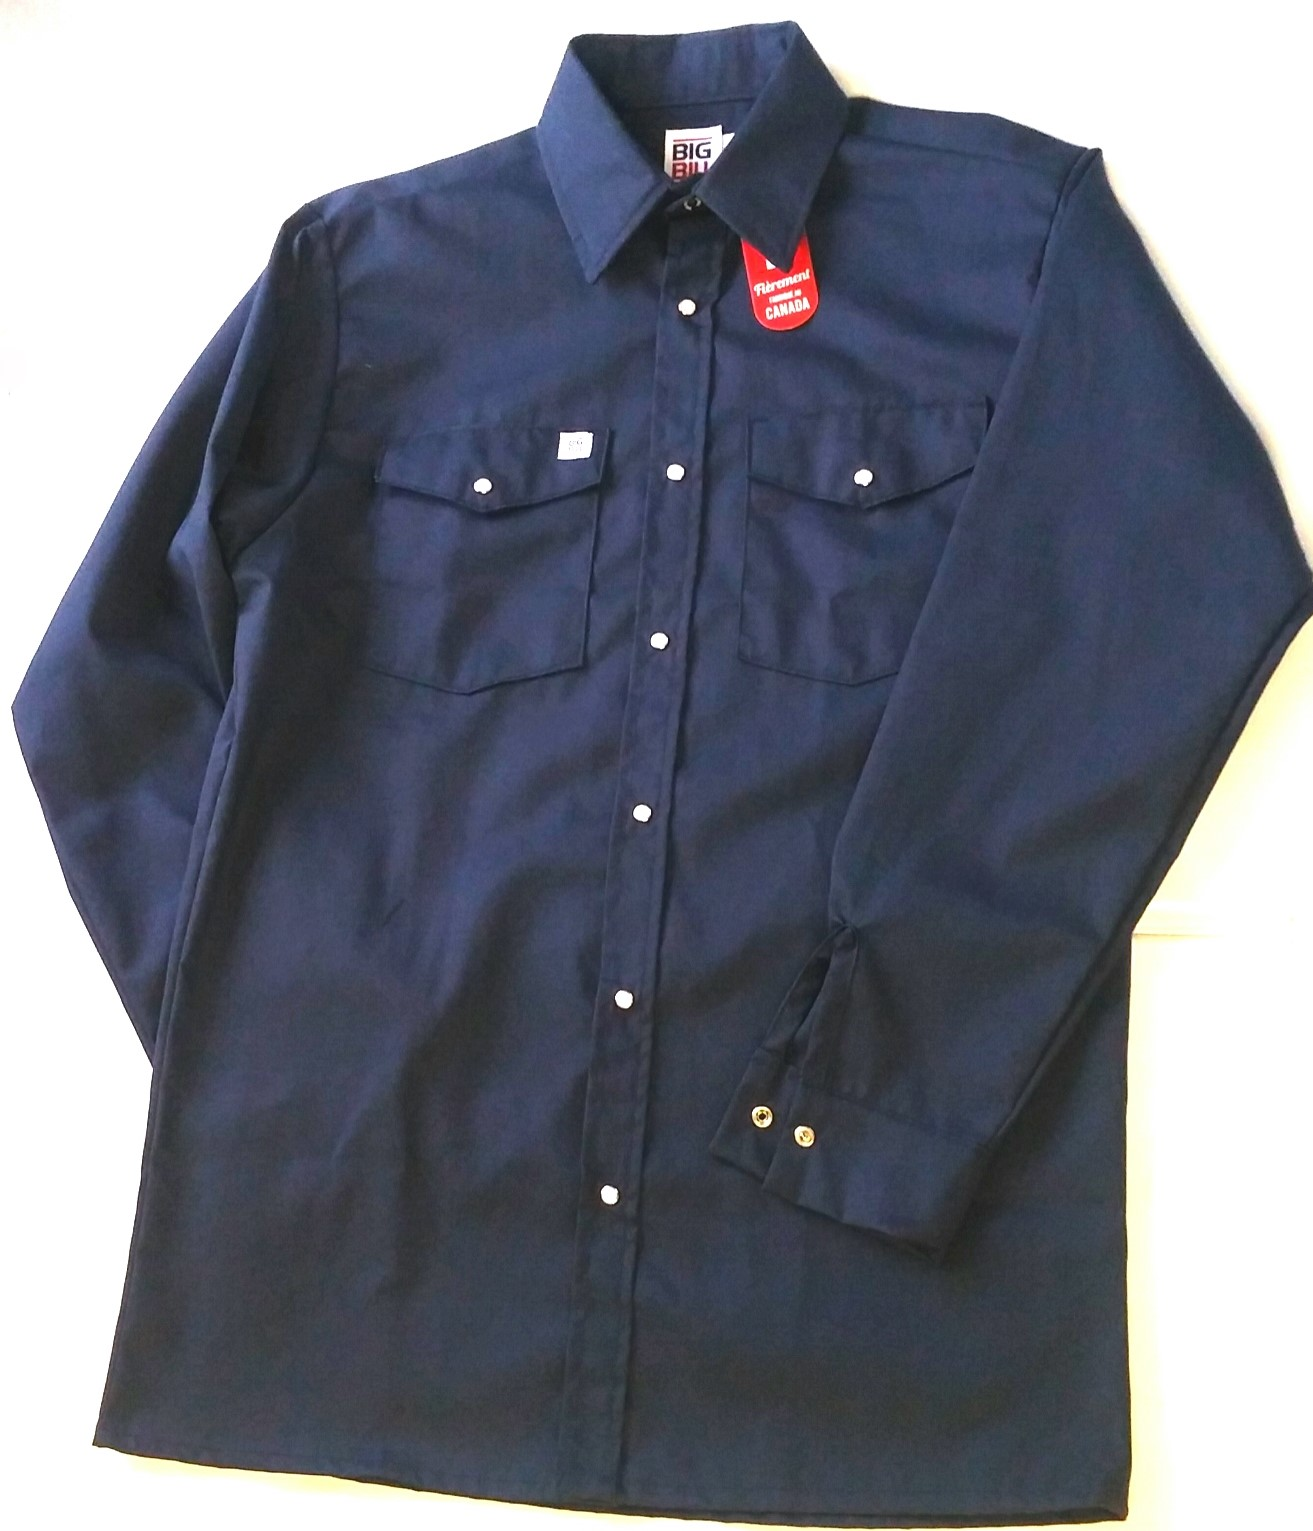 Big bill snap work shirt long sleeve (247)